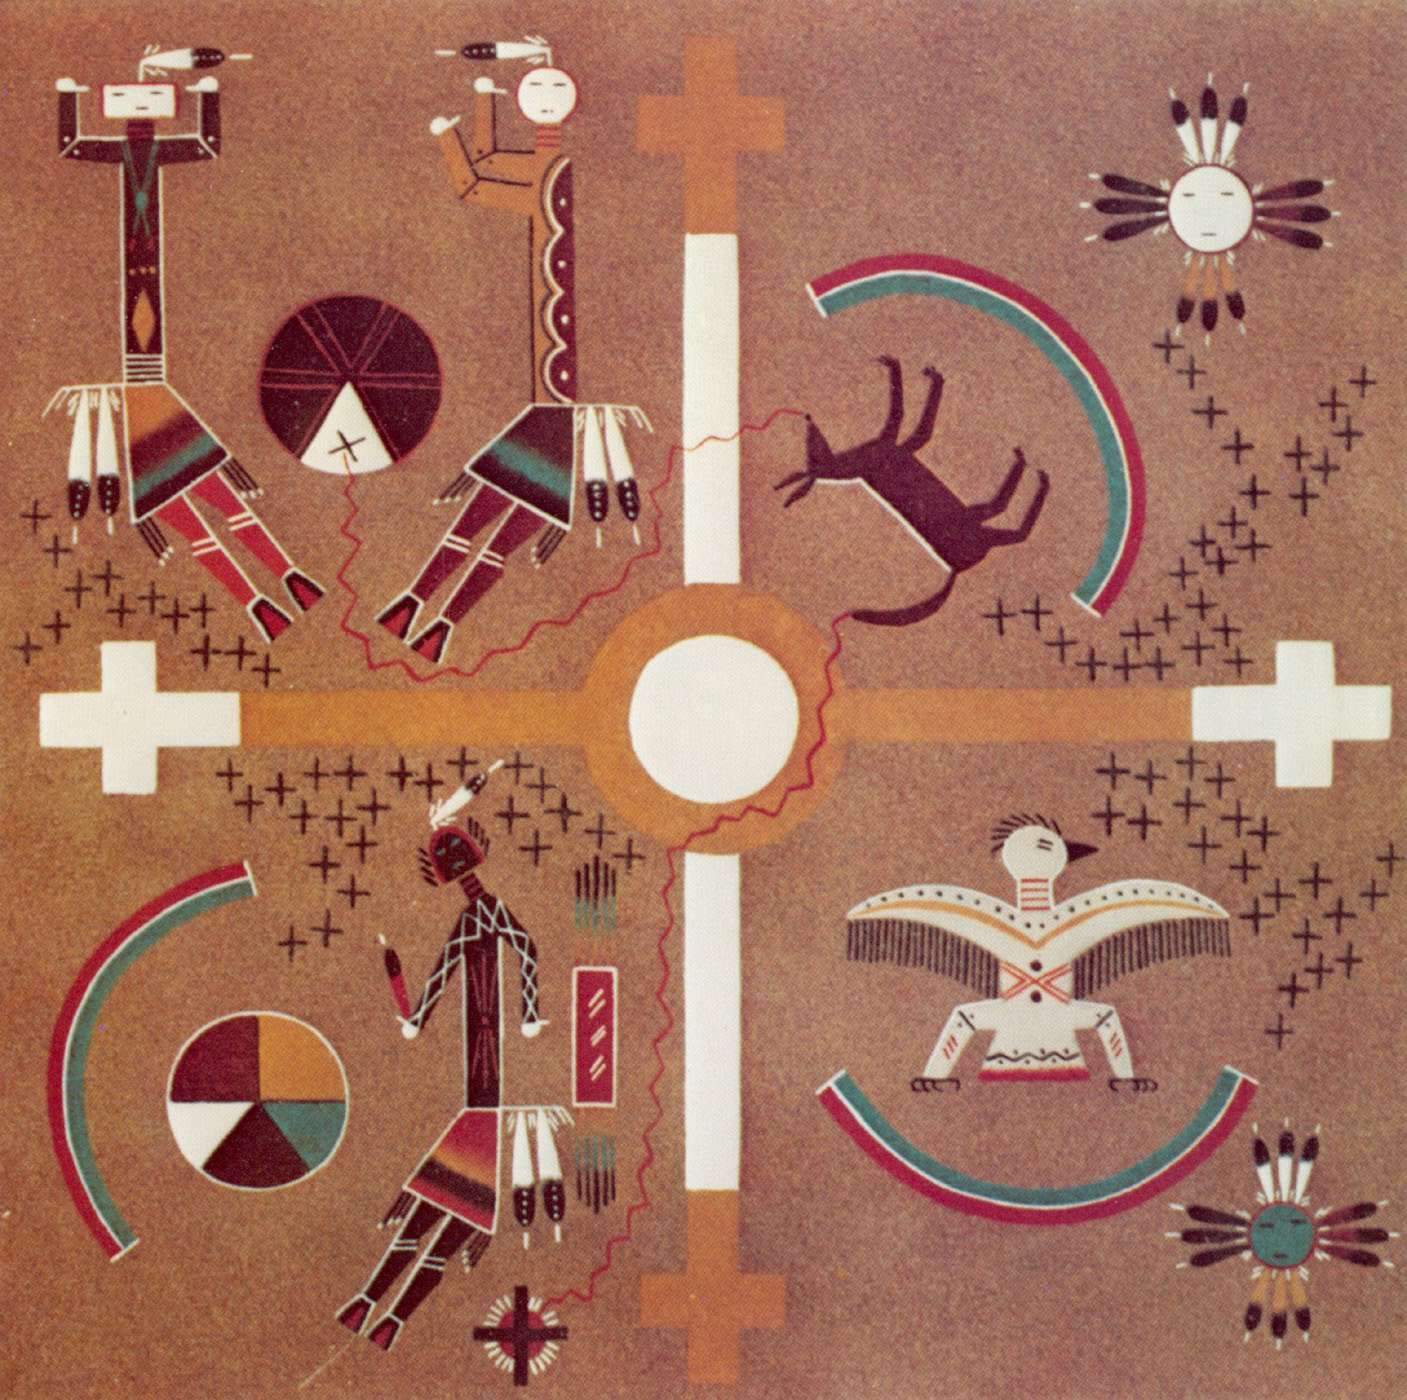 Man in the Maze: THE SACRED ART OF NAVAJO SANDPAINTING